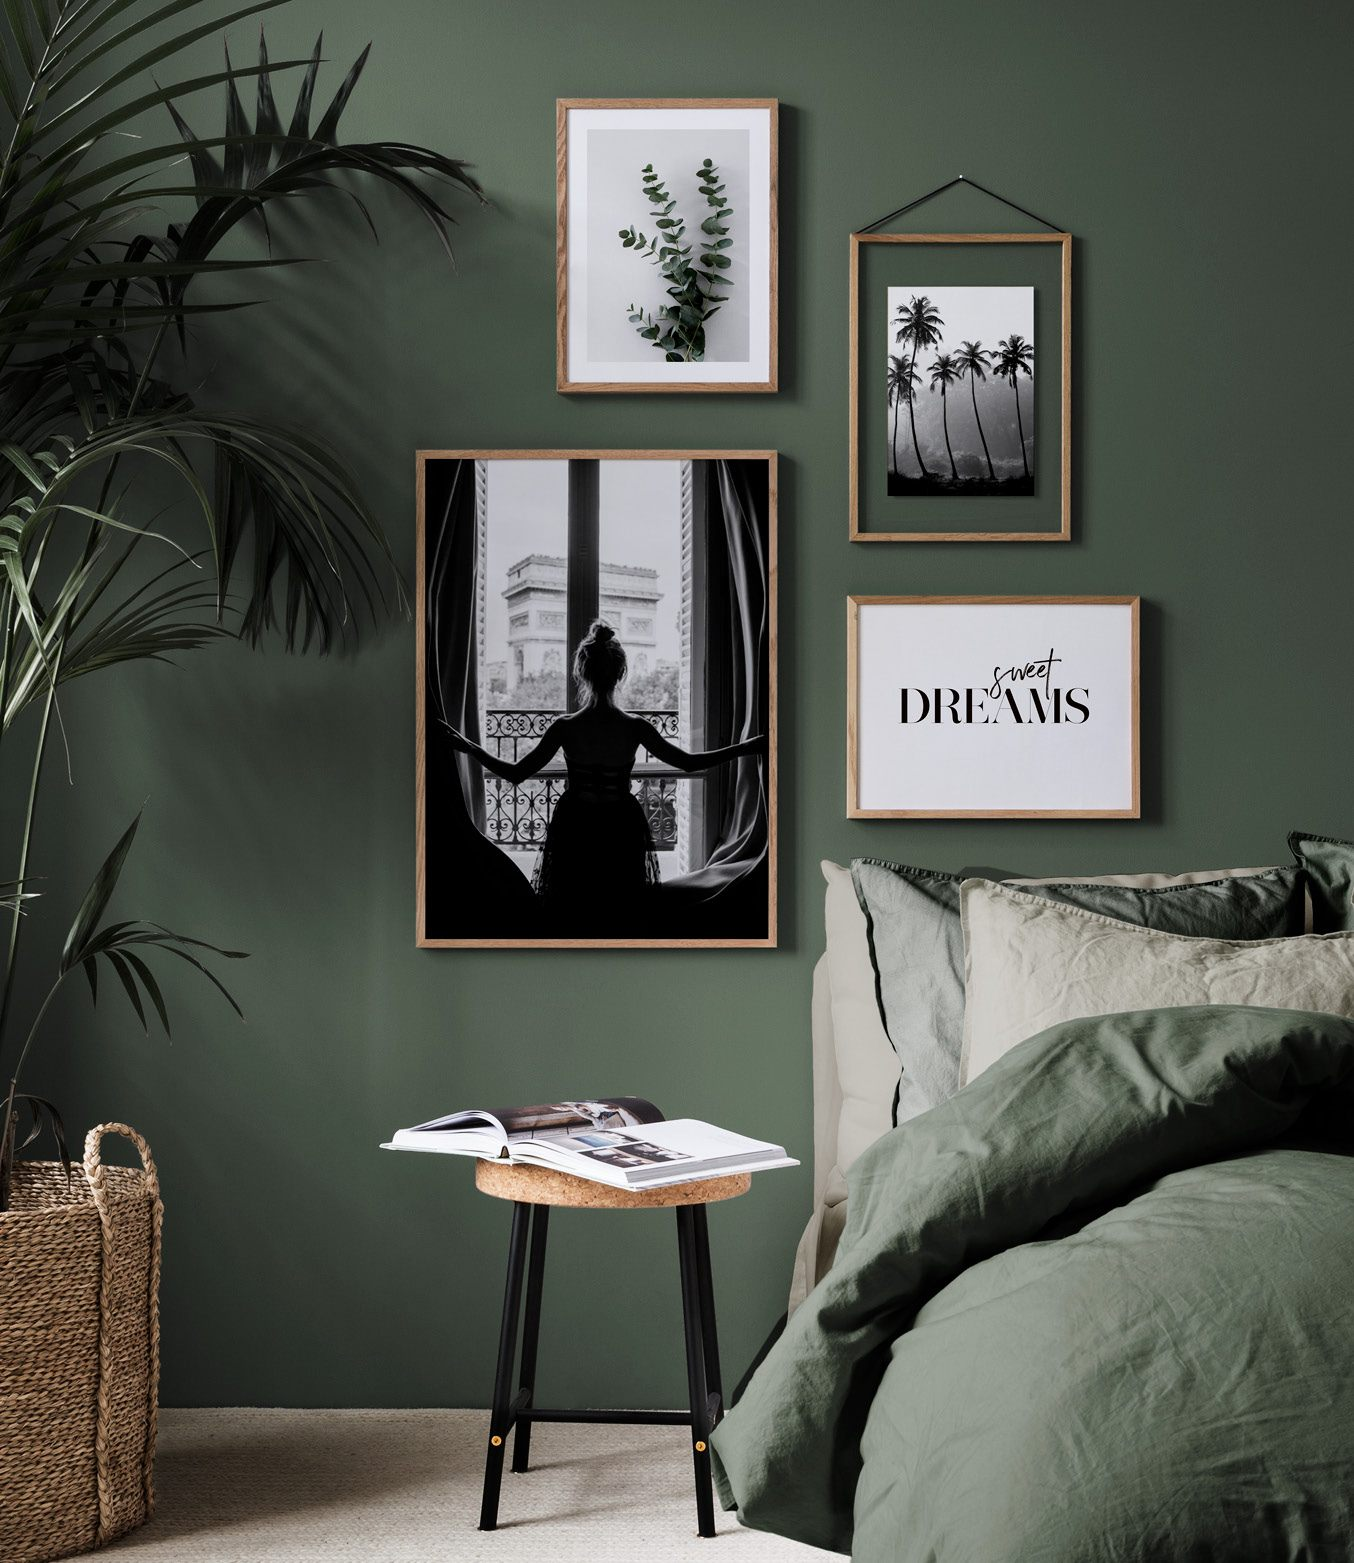 We Challenge You To Style Green Decor Ideas For A Week 9 green decor ideas We Challenge You To Style Green Decor Ideas For A Week We Challenge You To Style Green Decor Ideas For A Week 9